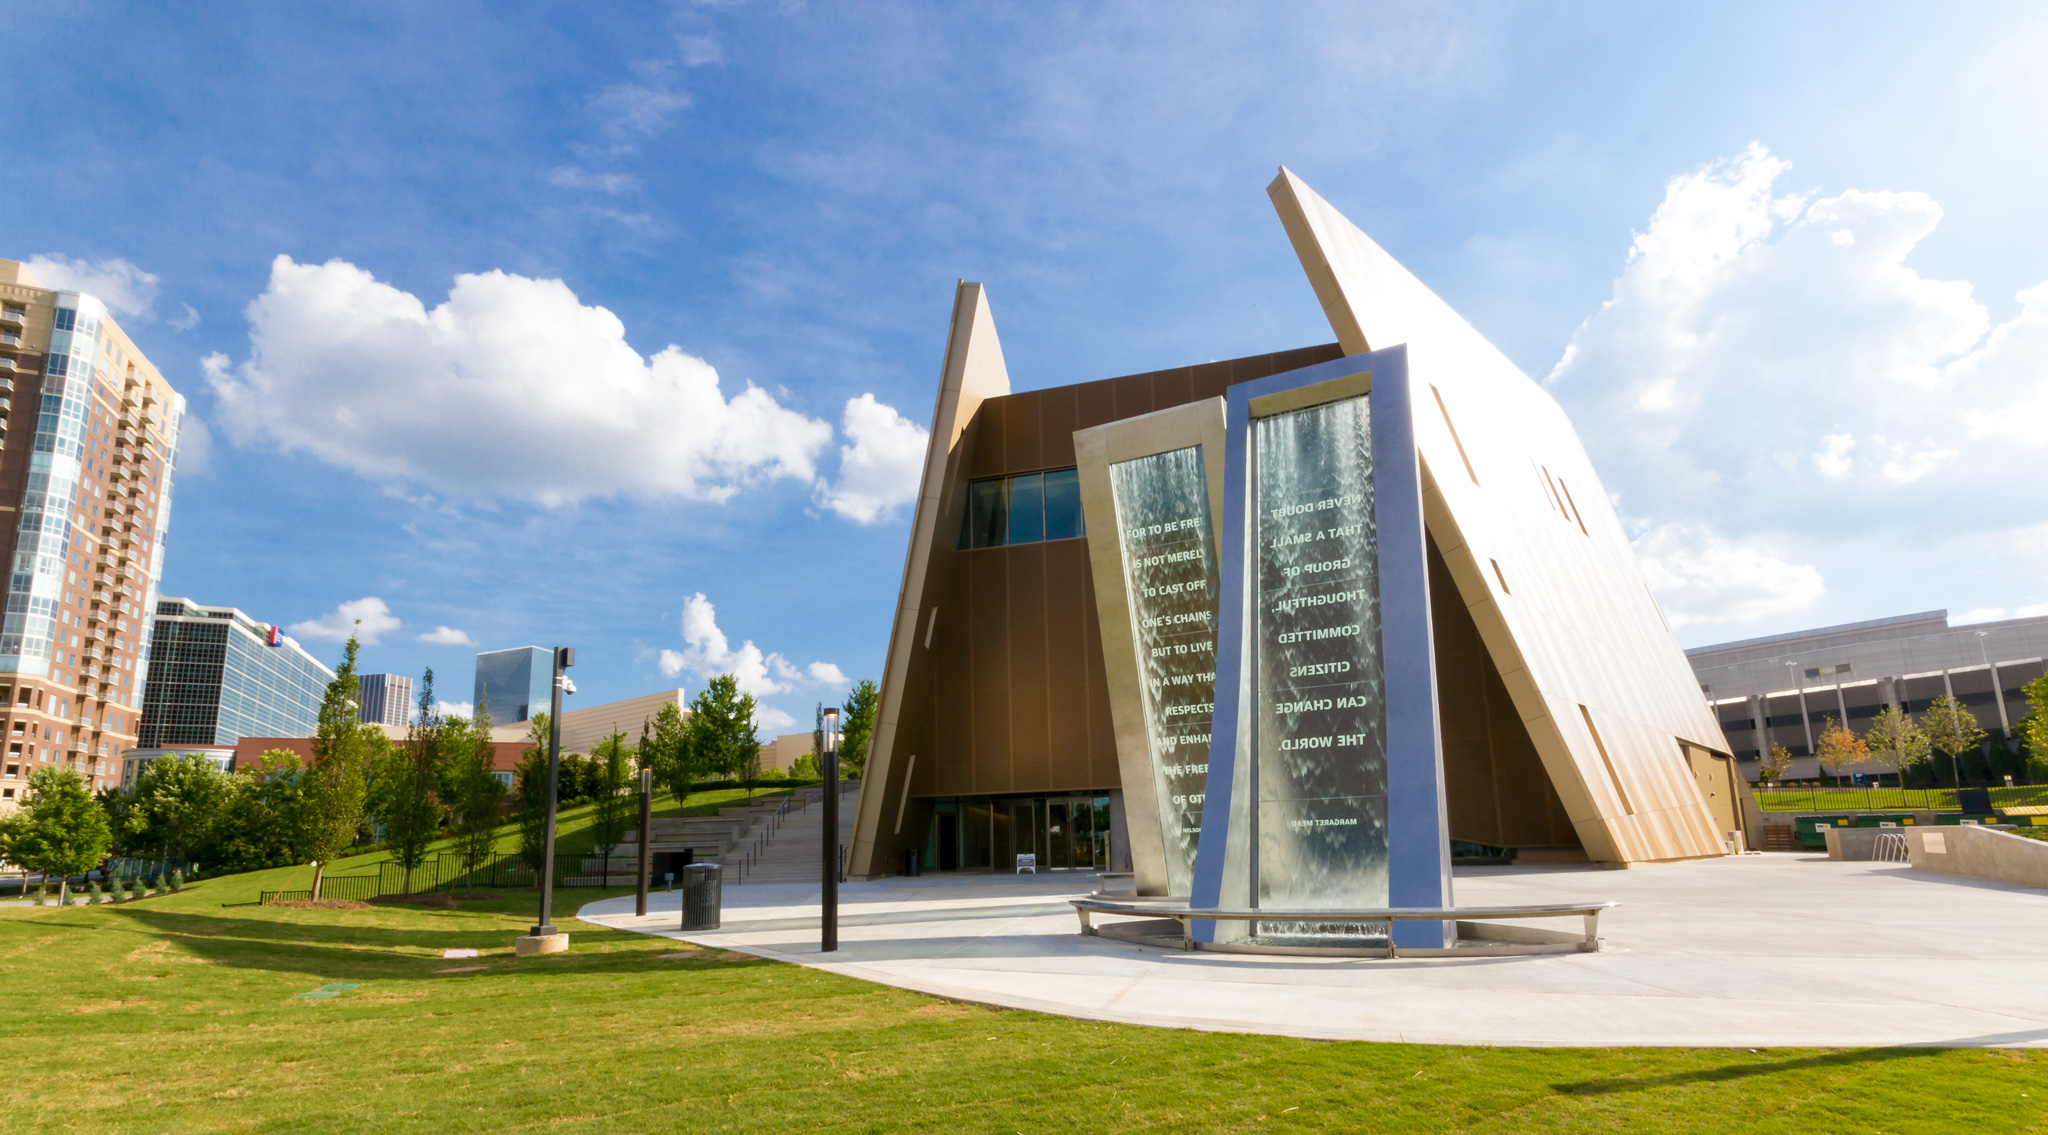 Relive the civil rights era in America at the National Center for Civil and Human Rights in Atlanta